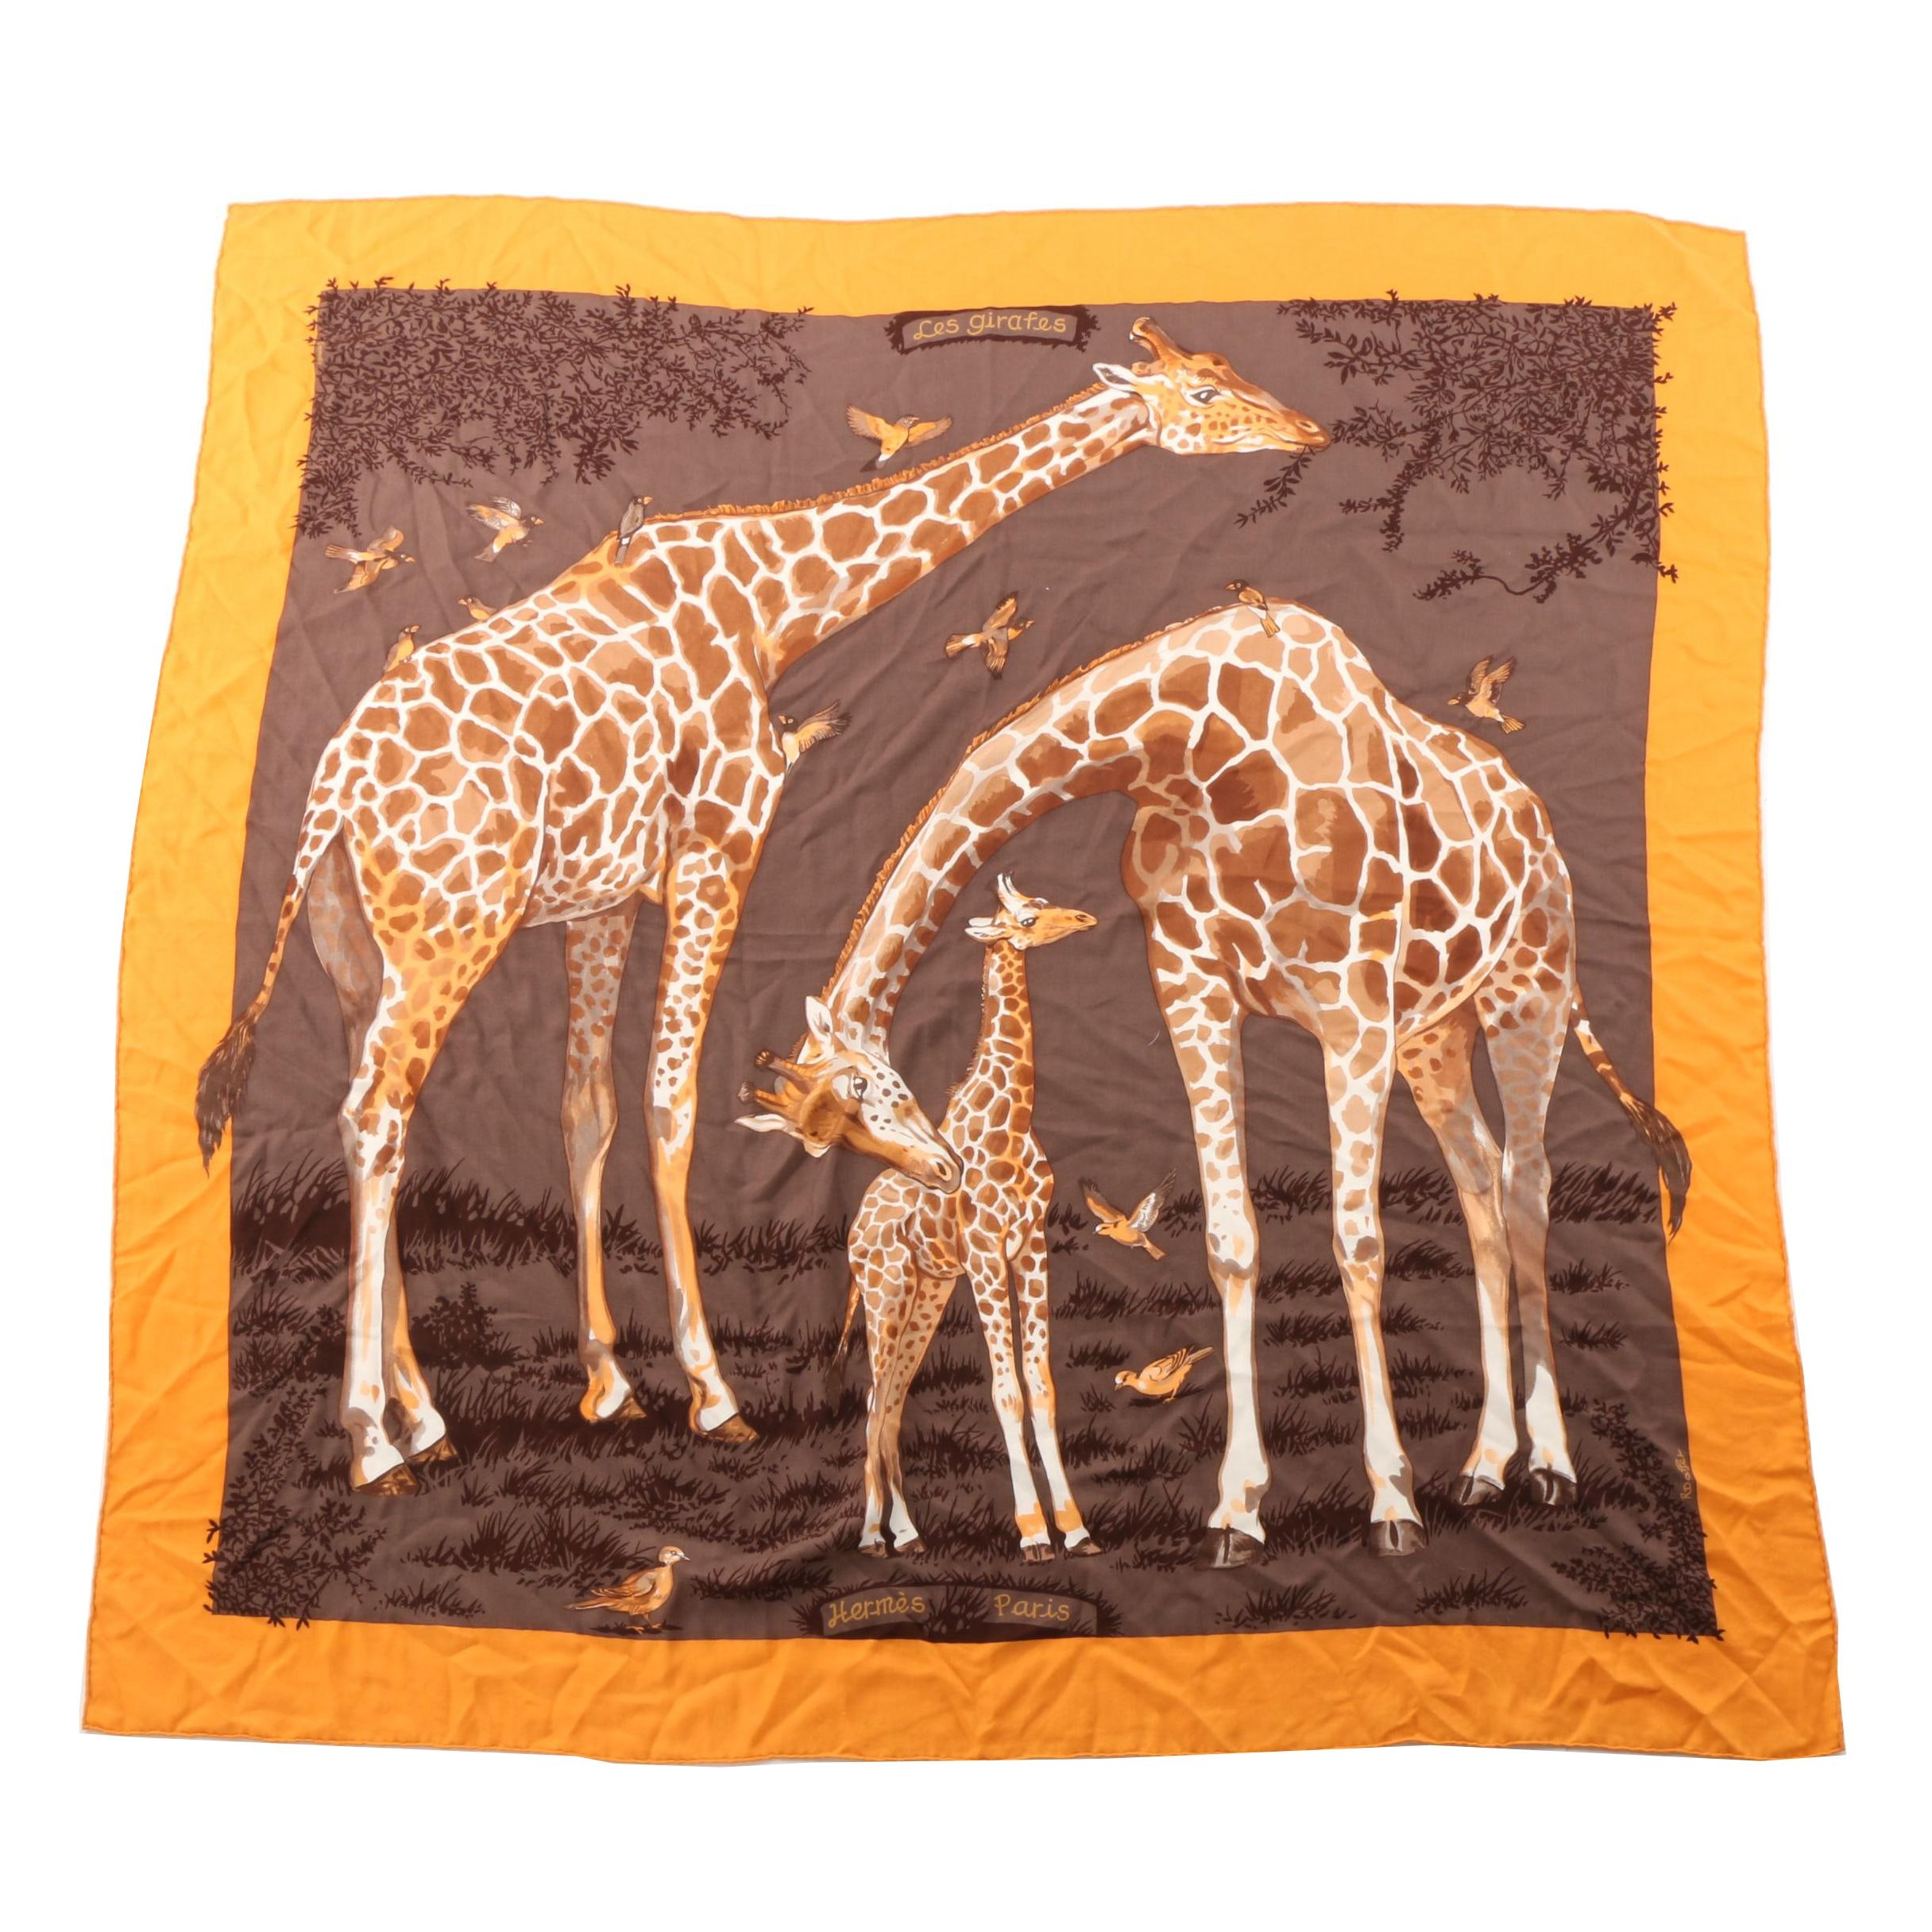 "Hermès of Paris ""Les Girafes"" Cashmere and Silk Twill Scarf"